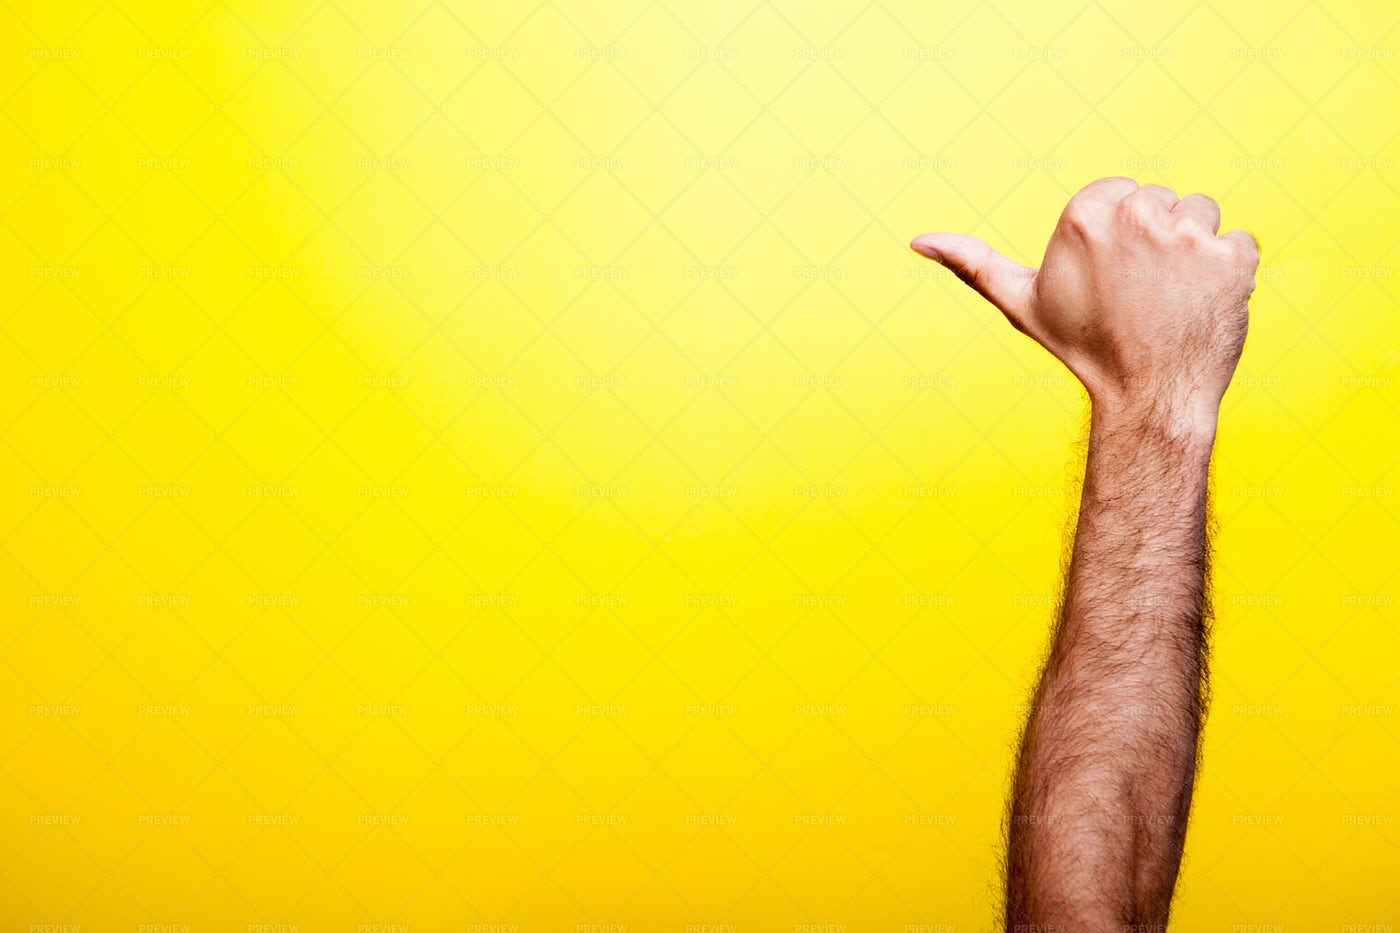 Male Hands Showing A Thumb Up Sign: Stock Photos